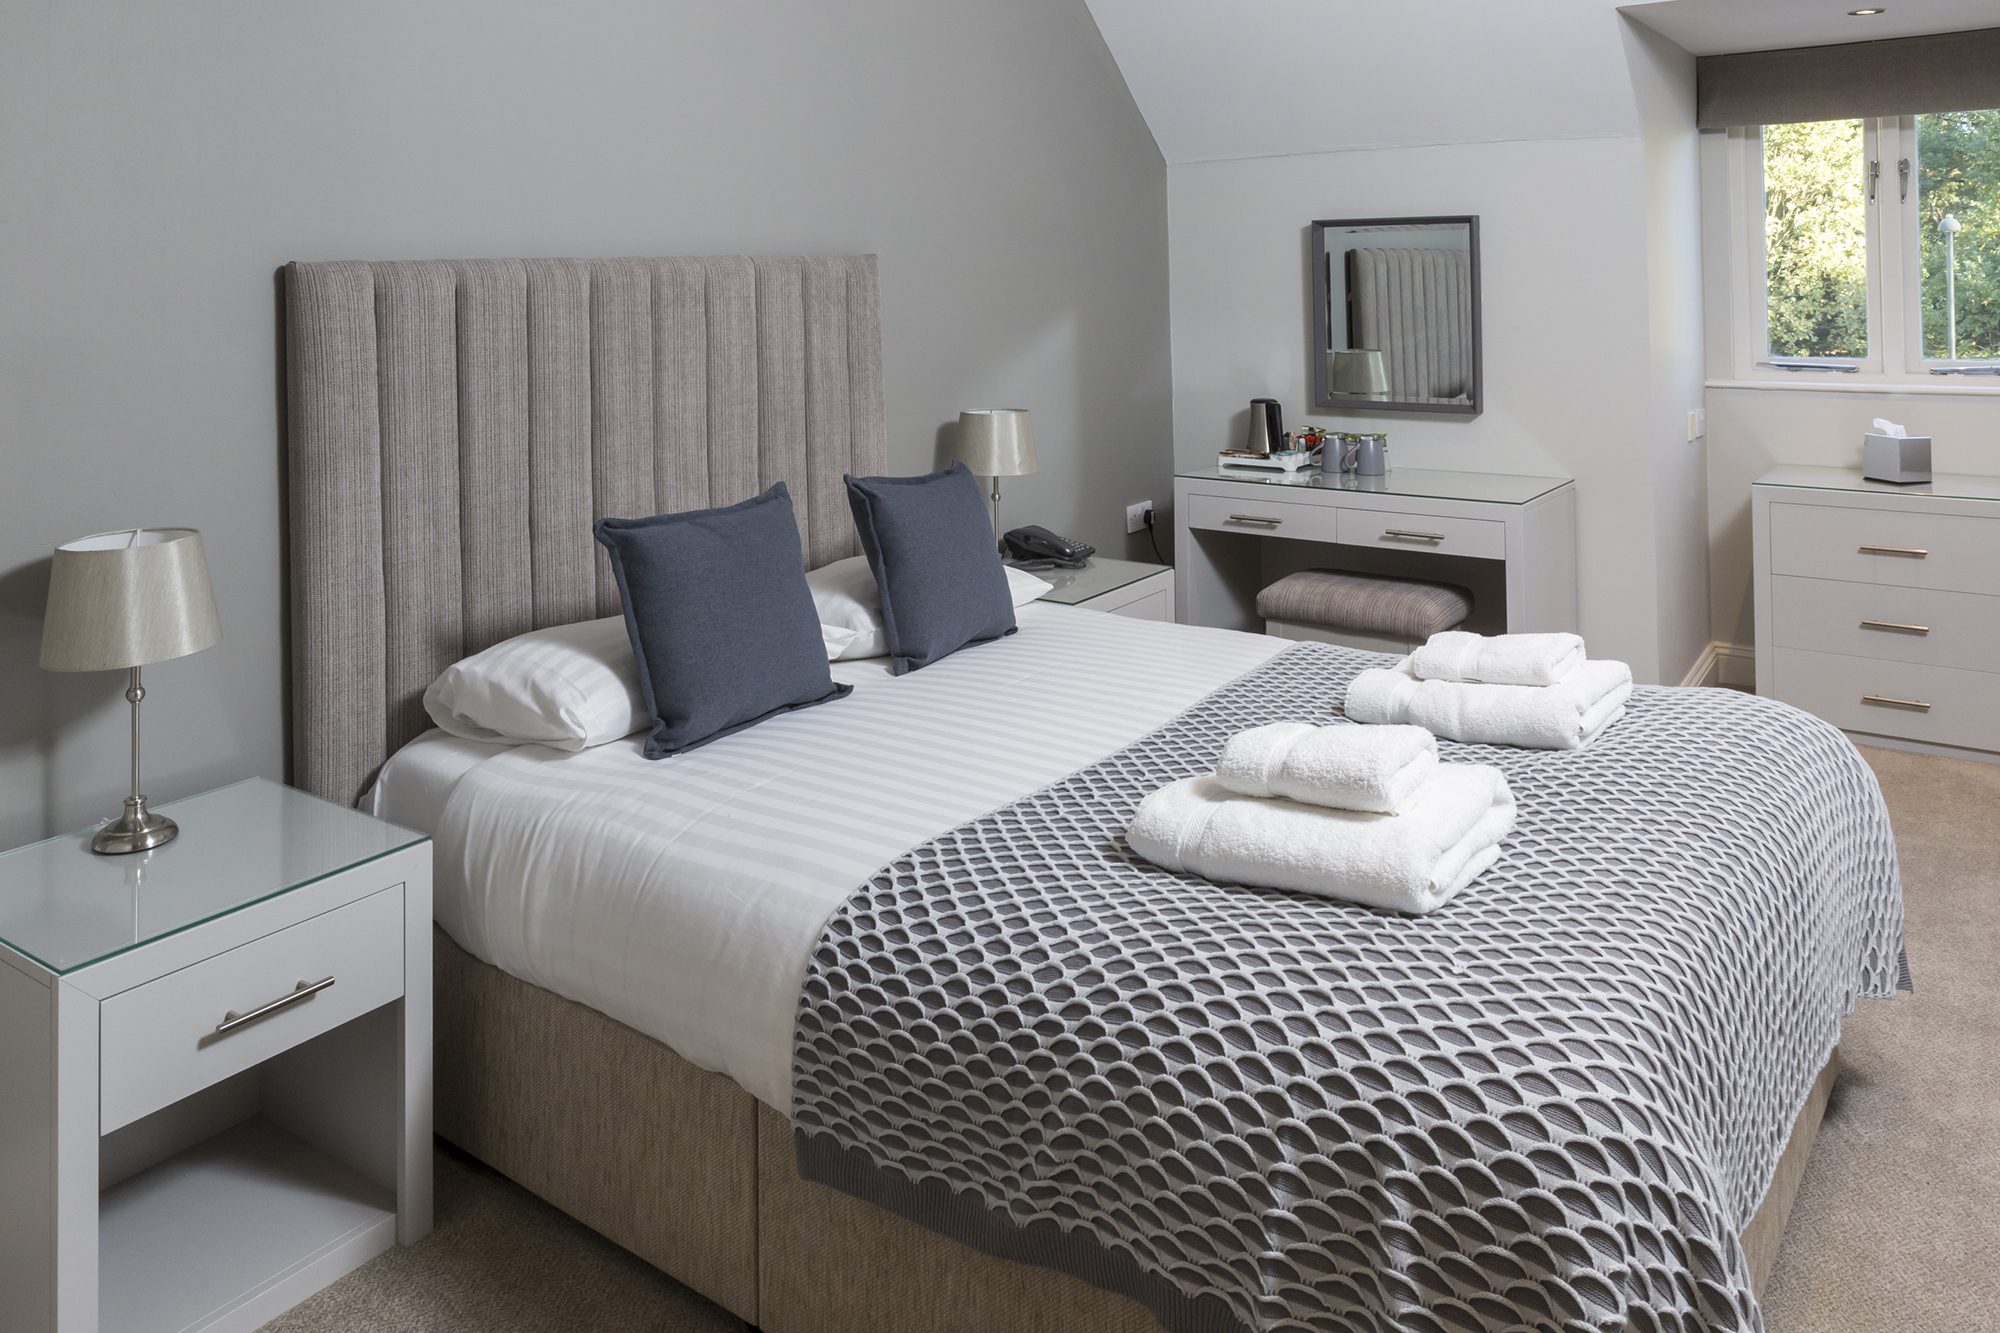 Crown Chislehurst Rooms